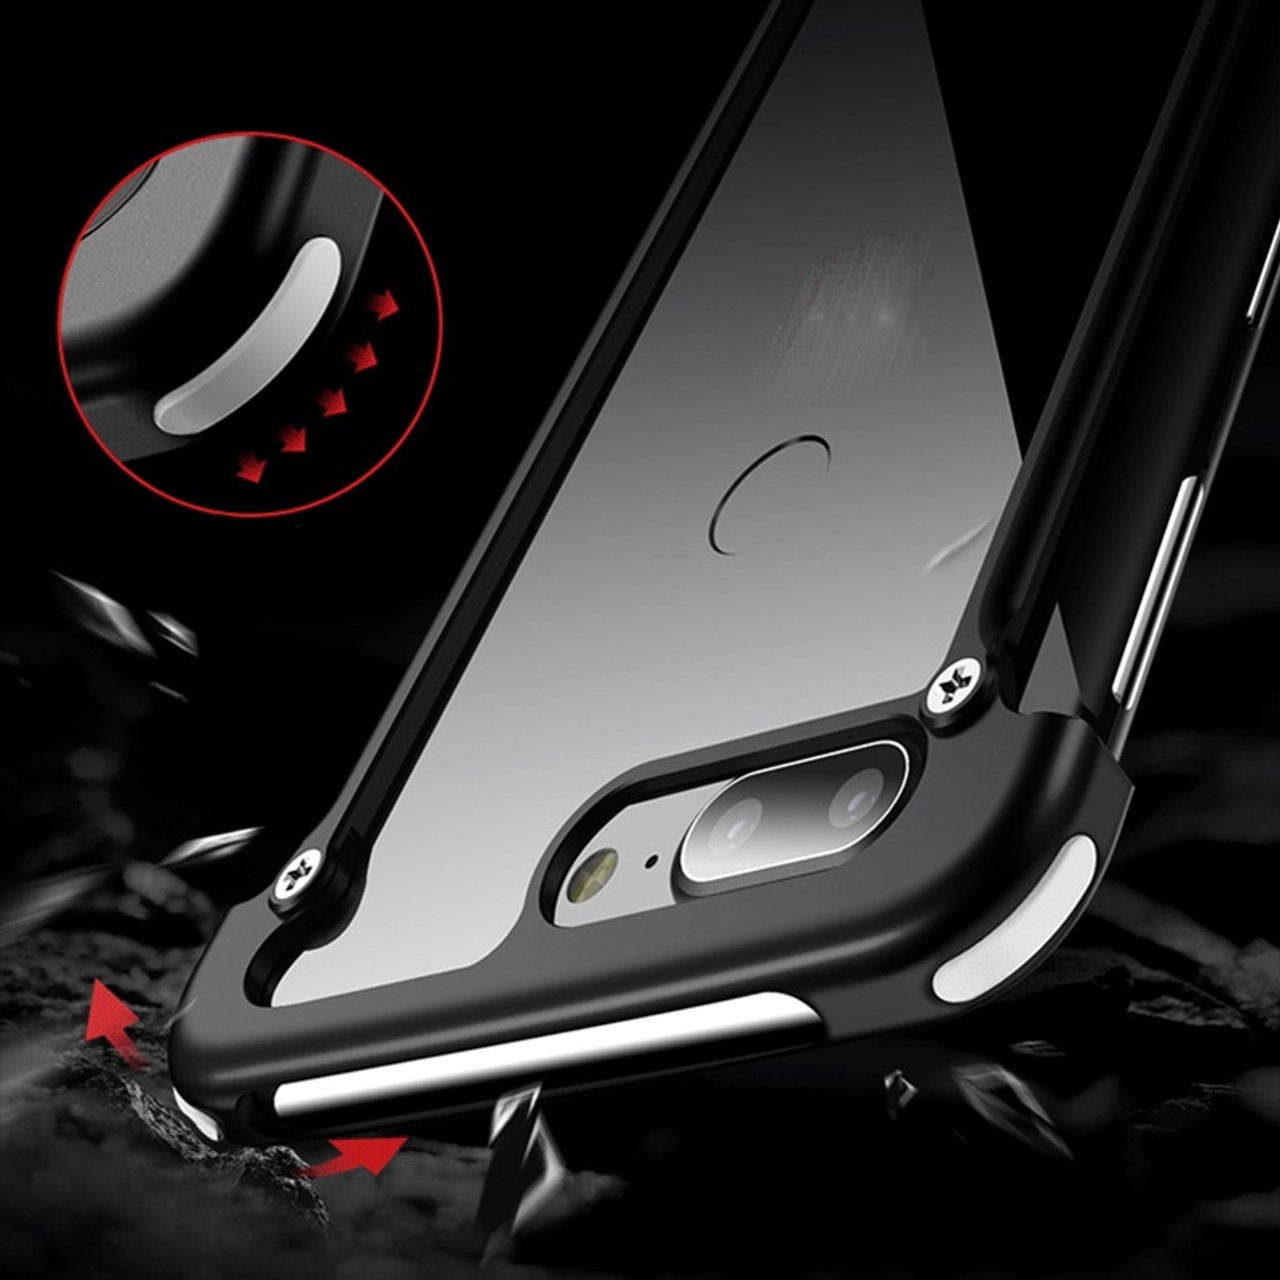 for Nubia Z17 case Aluminum metal bumper case for ZTE nubia Z17 lite cases